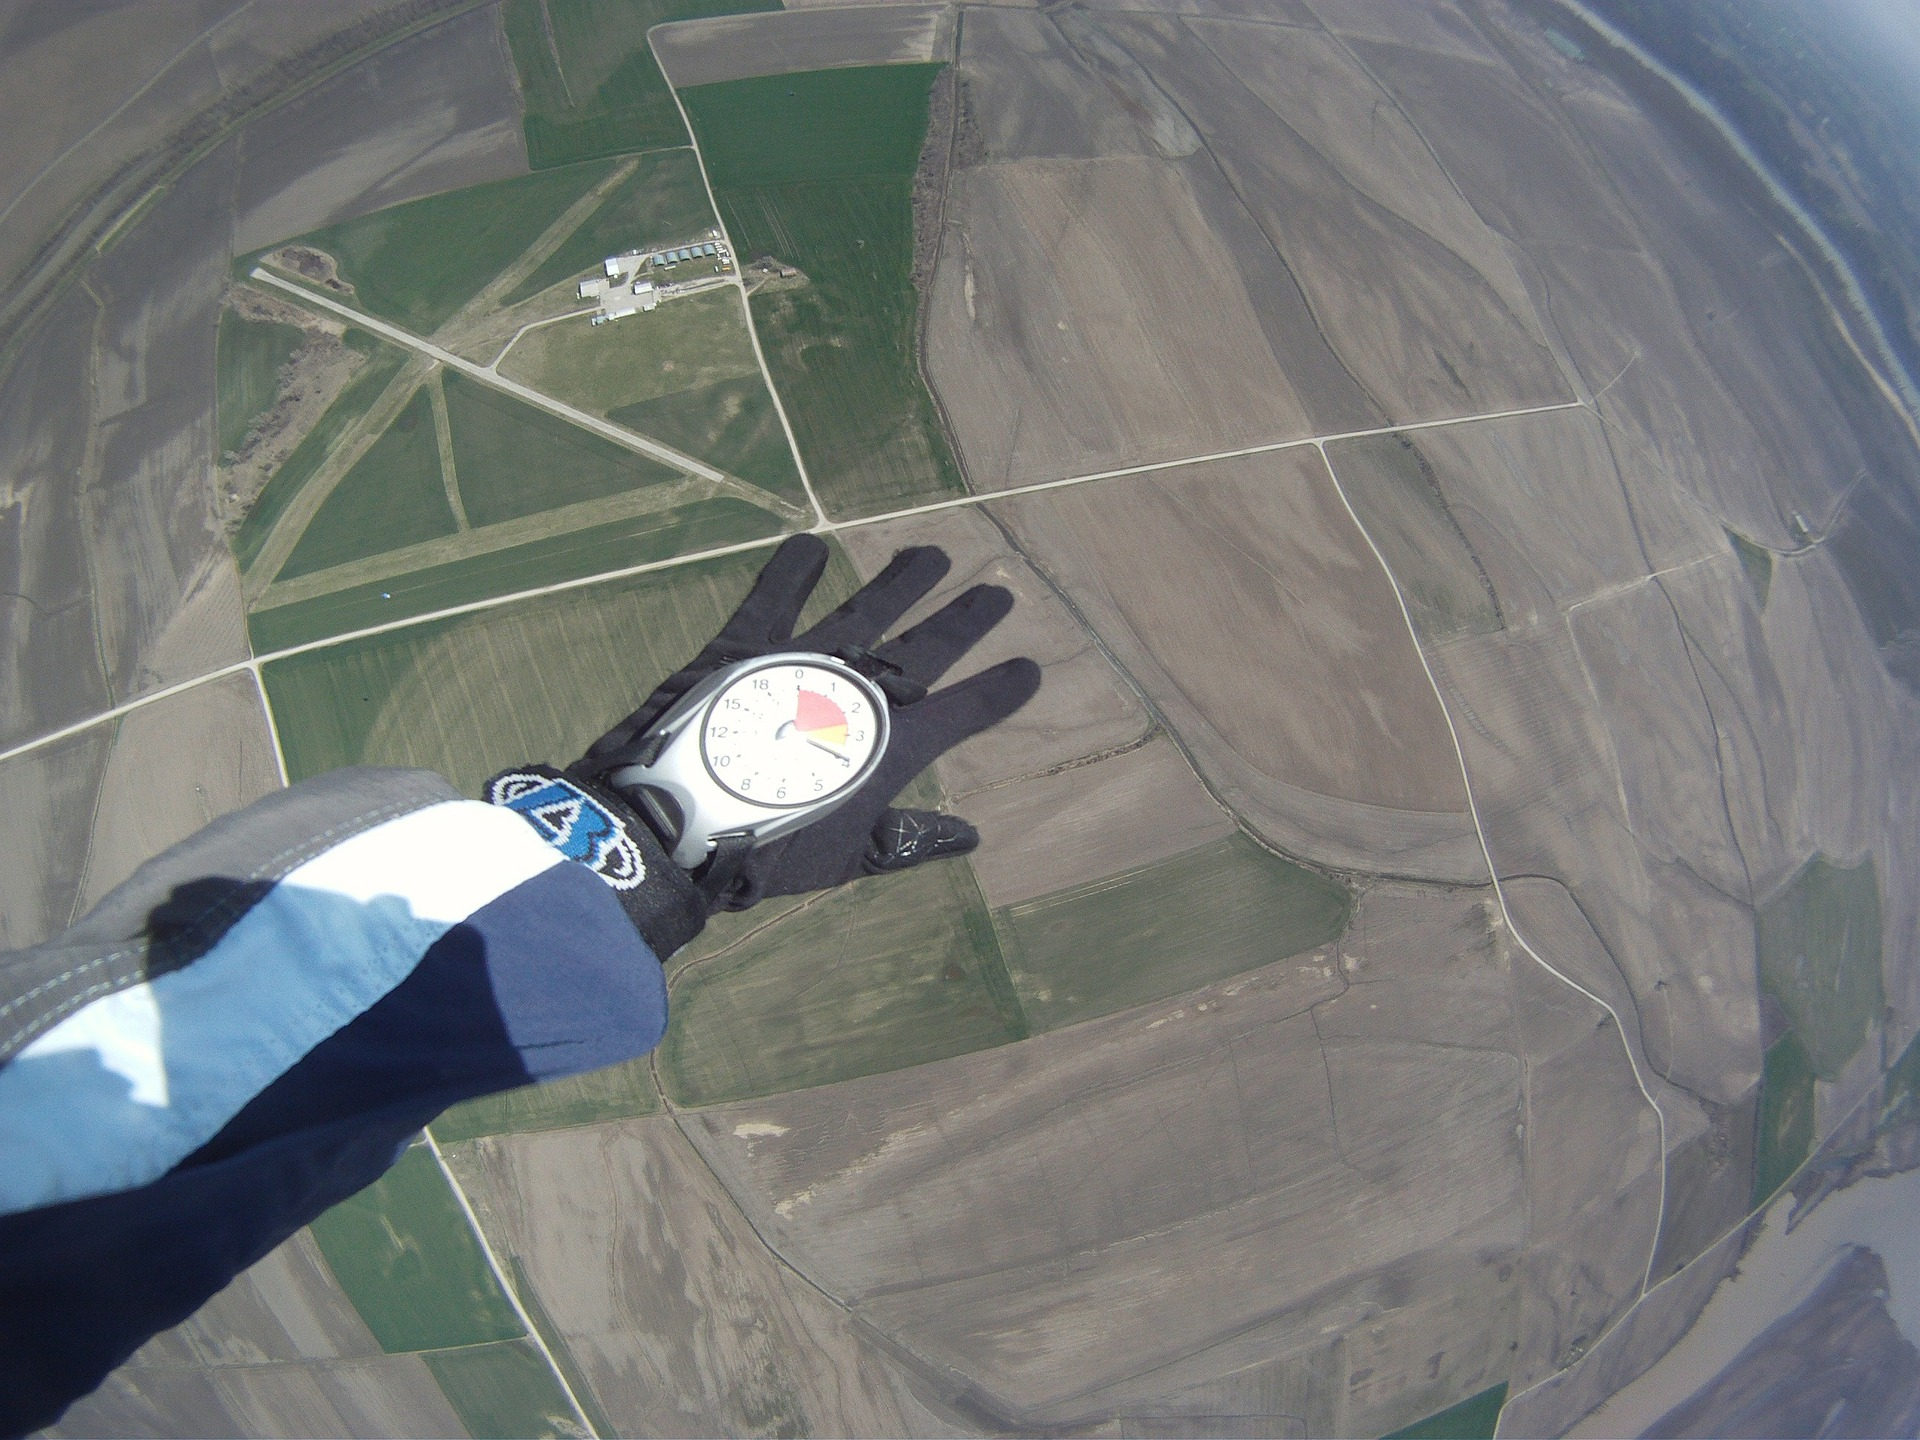 skydiving-270141_1920